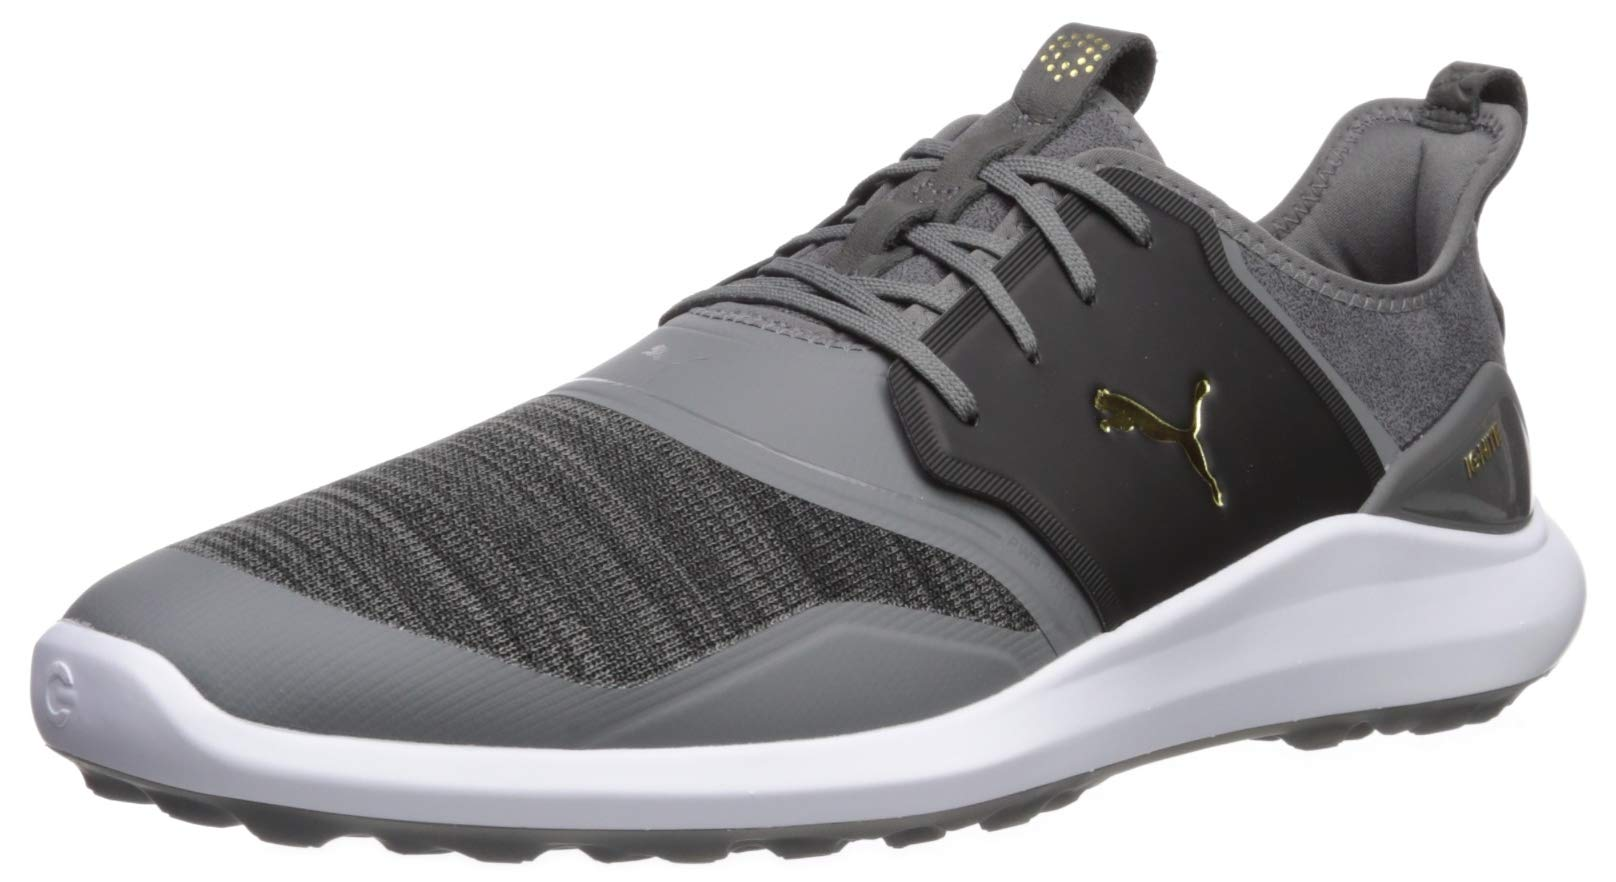 Puma Golf Men's Ignite Nxt Lace Golf Shoe, Quiet Shade Team Gold-Puma Black, 7.5 Wide US by PUMA